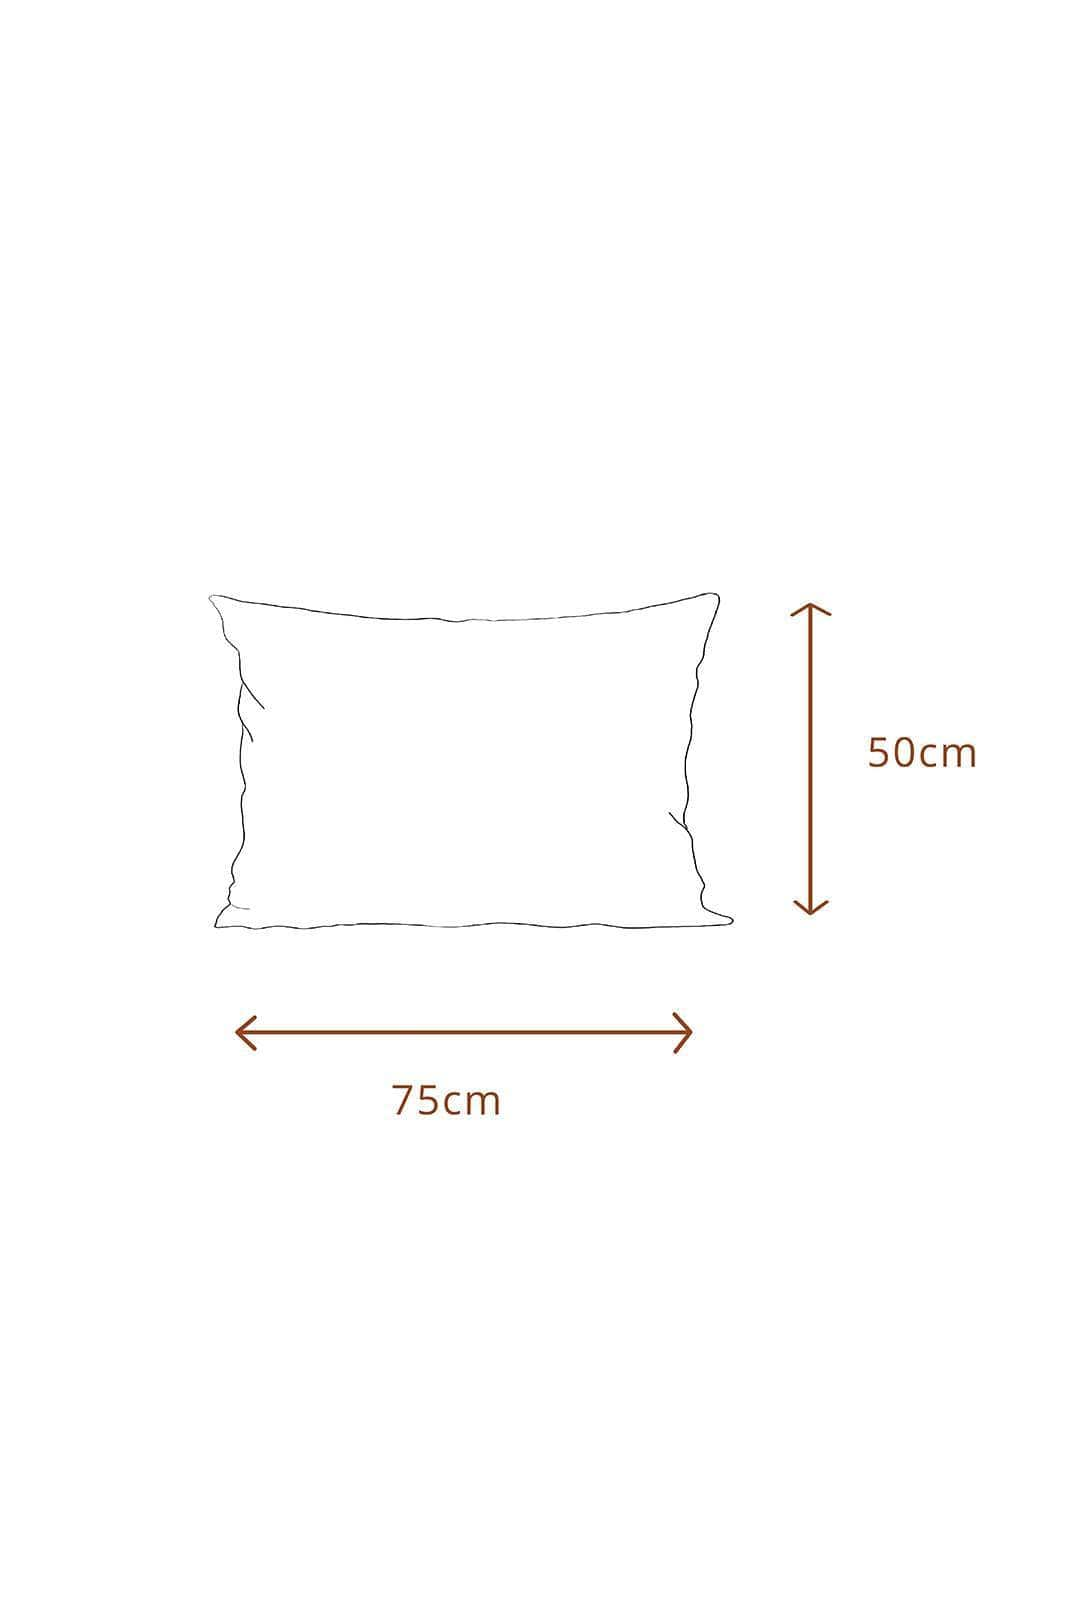 arkitaip Pillowslips 50 x 75cm / White The Ruffled Casita Linen Pillowslips Set in White